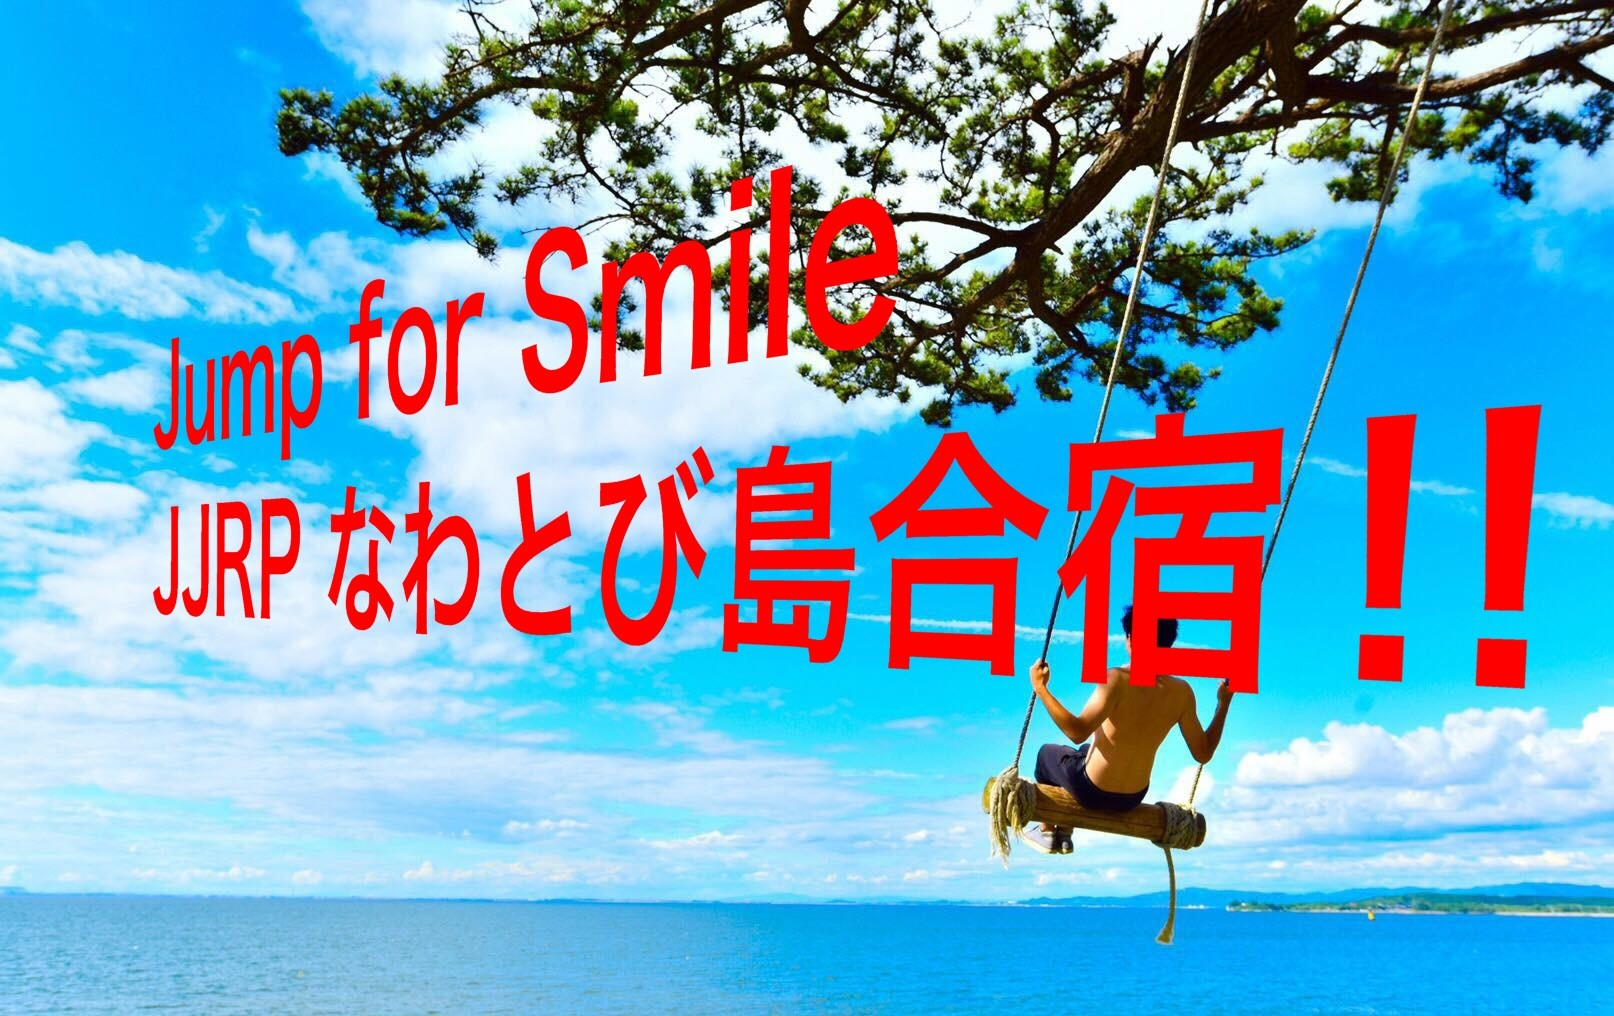 Jump for Smile JJRPなわとび島合宿 2018